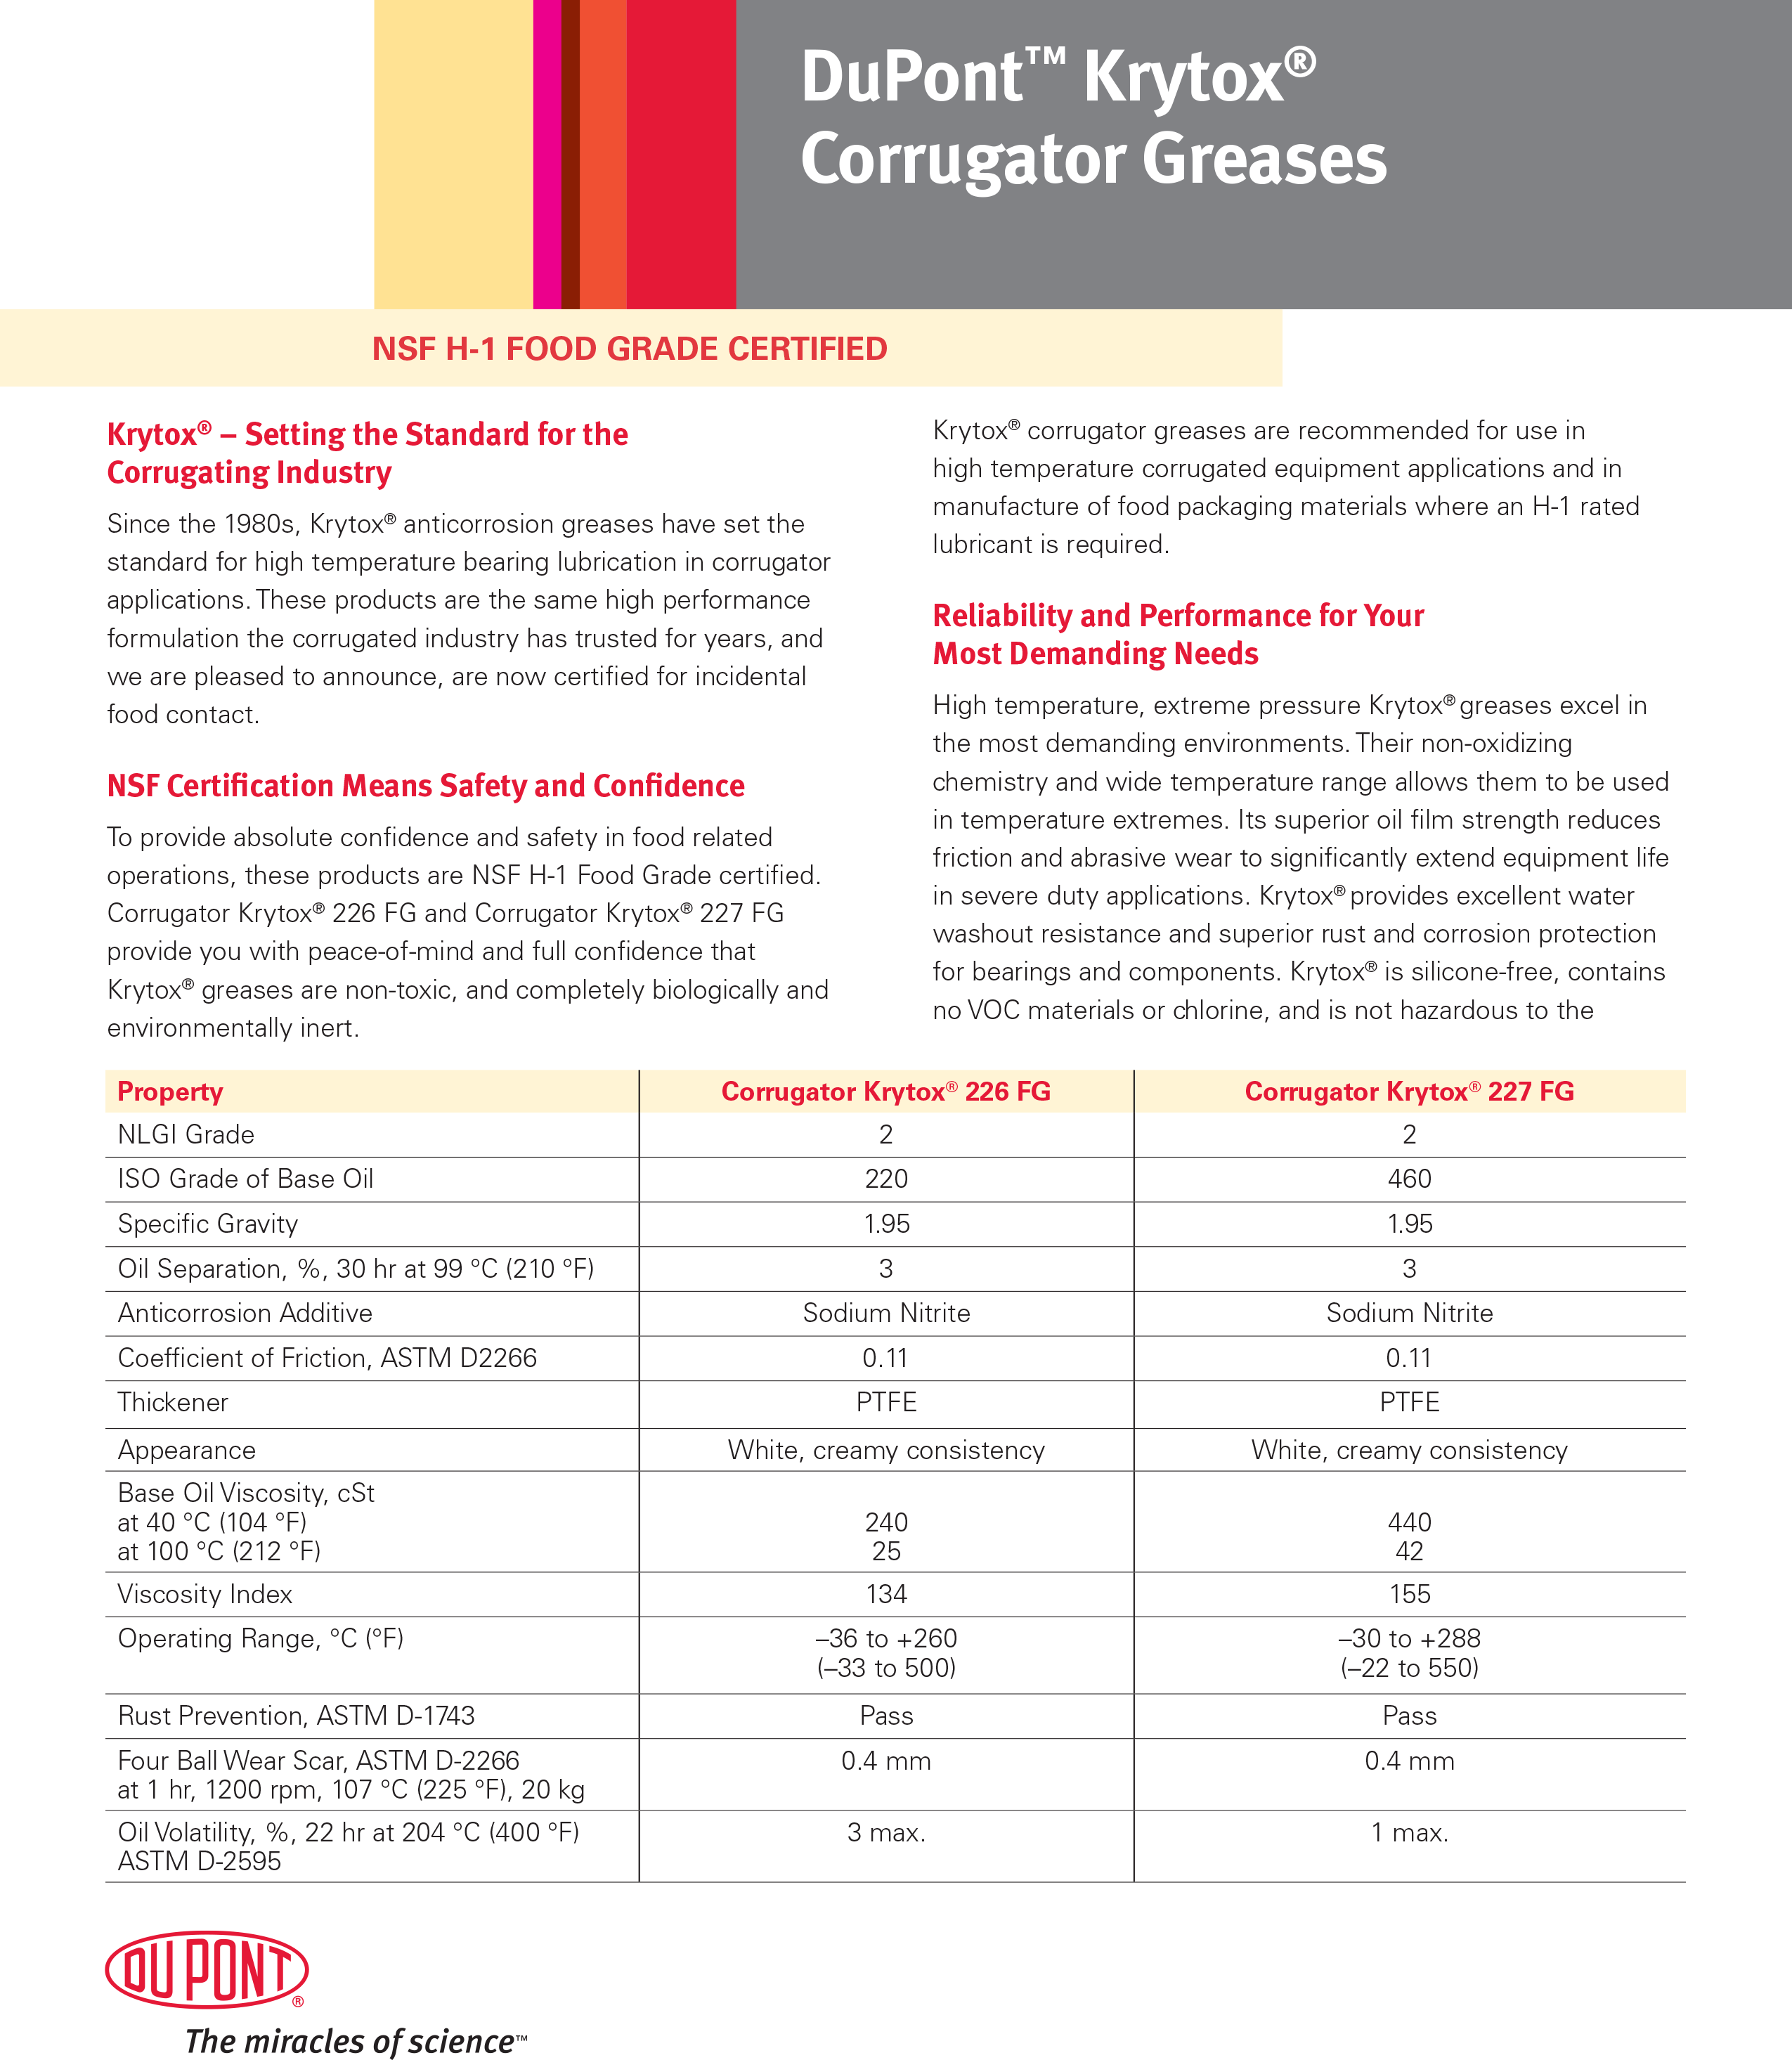 Learn more about DuPont™ Krytox® NSF H-1 Food Grade Certified greases in the Corrugator Greases brochure.